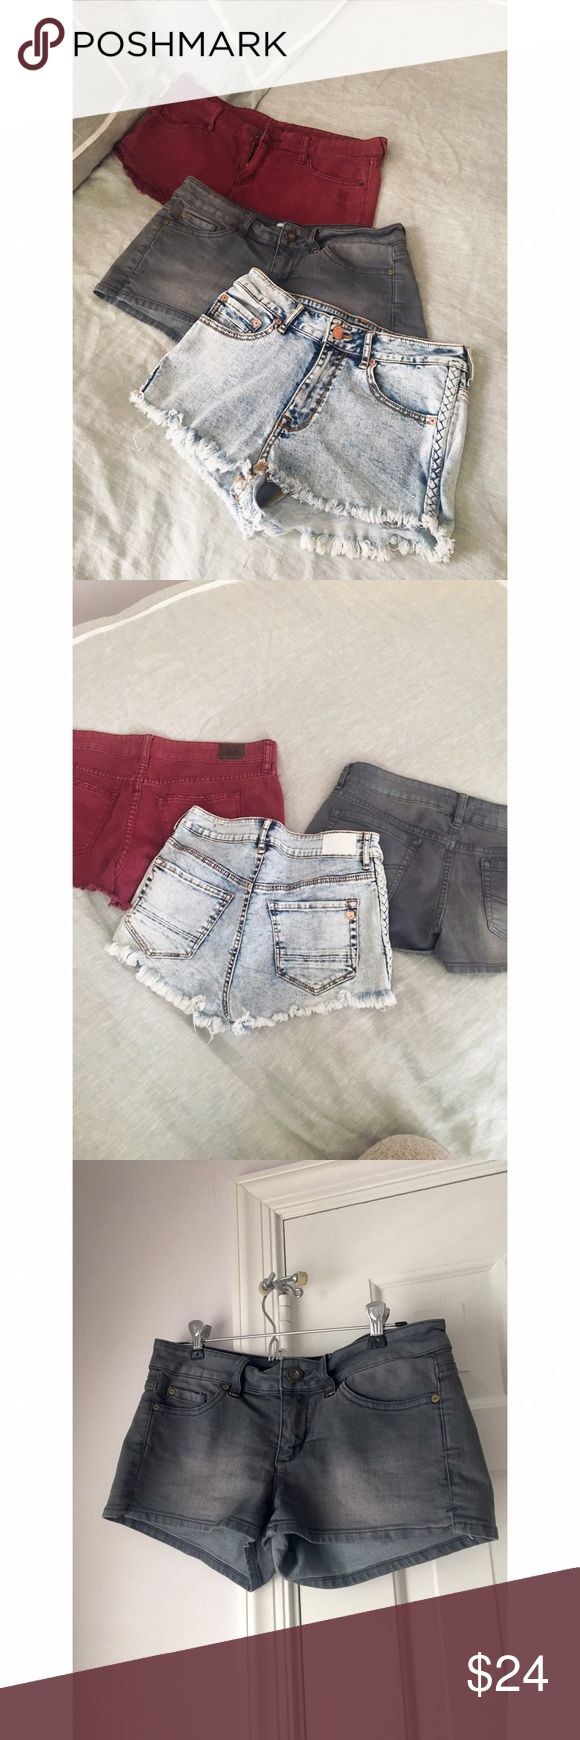 Jean Shorts Bundle Offer 3 for 24 Get all three pairs for $24 plus you save on shipping! (1) dark red pair is BDG size 28 low rise fit (2) dark gray pair is O'Neill size 7 low rise fit (3) light acid wash pair is Kendall & Kylie size 5 high rise fit and are stretchy. They are all in great condition and have been worn only a handful of times. They are all for sale individually in my closet as well this is just a promo offer because I don't fit into them anymore and really need to clear out my…